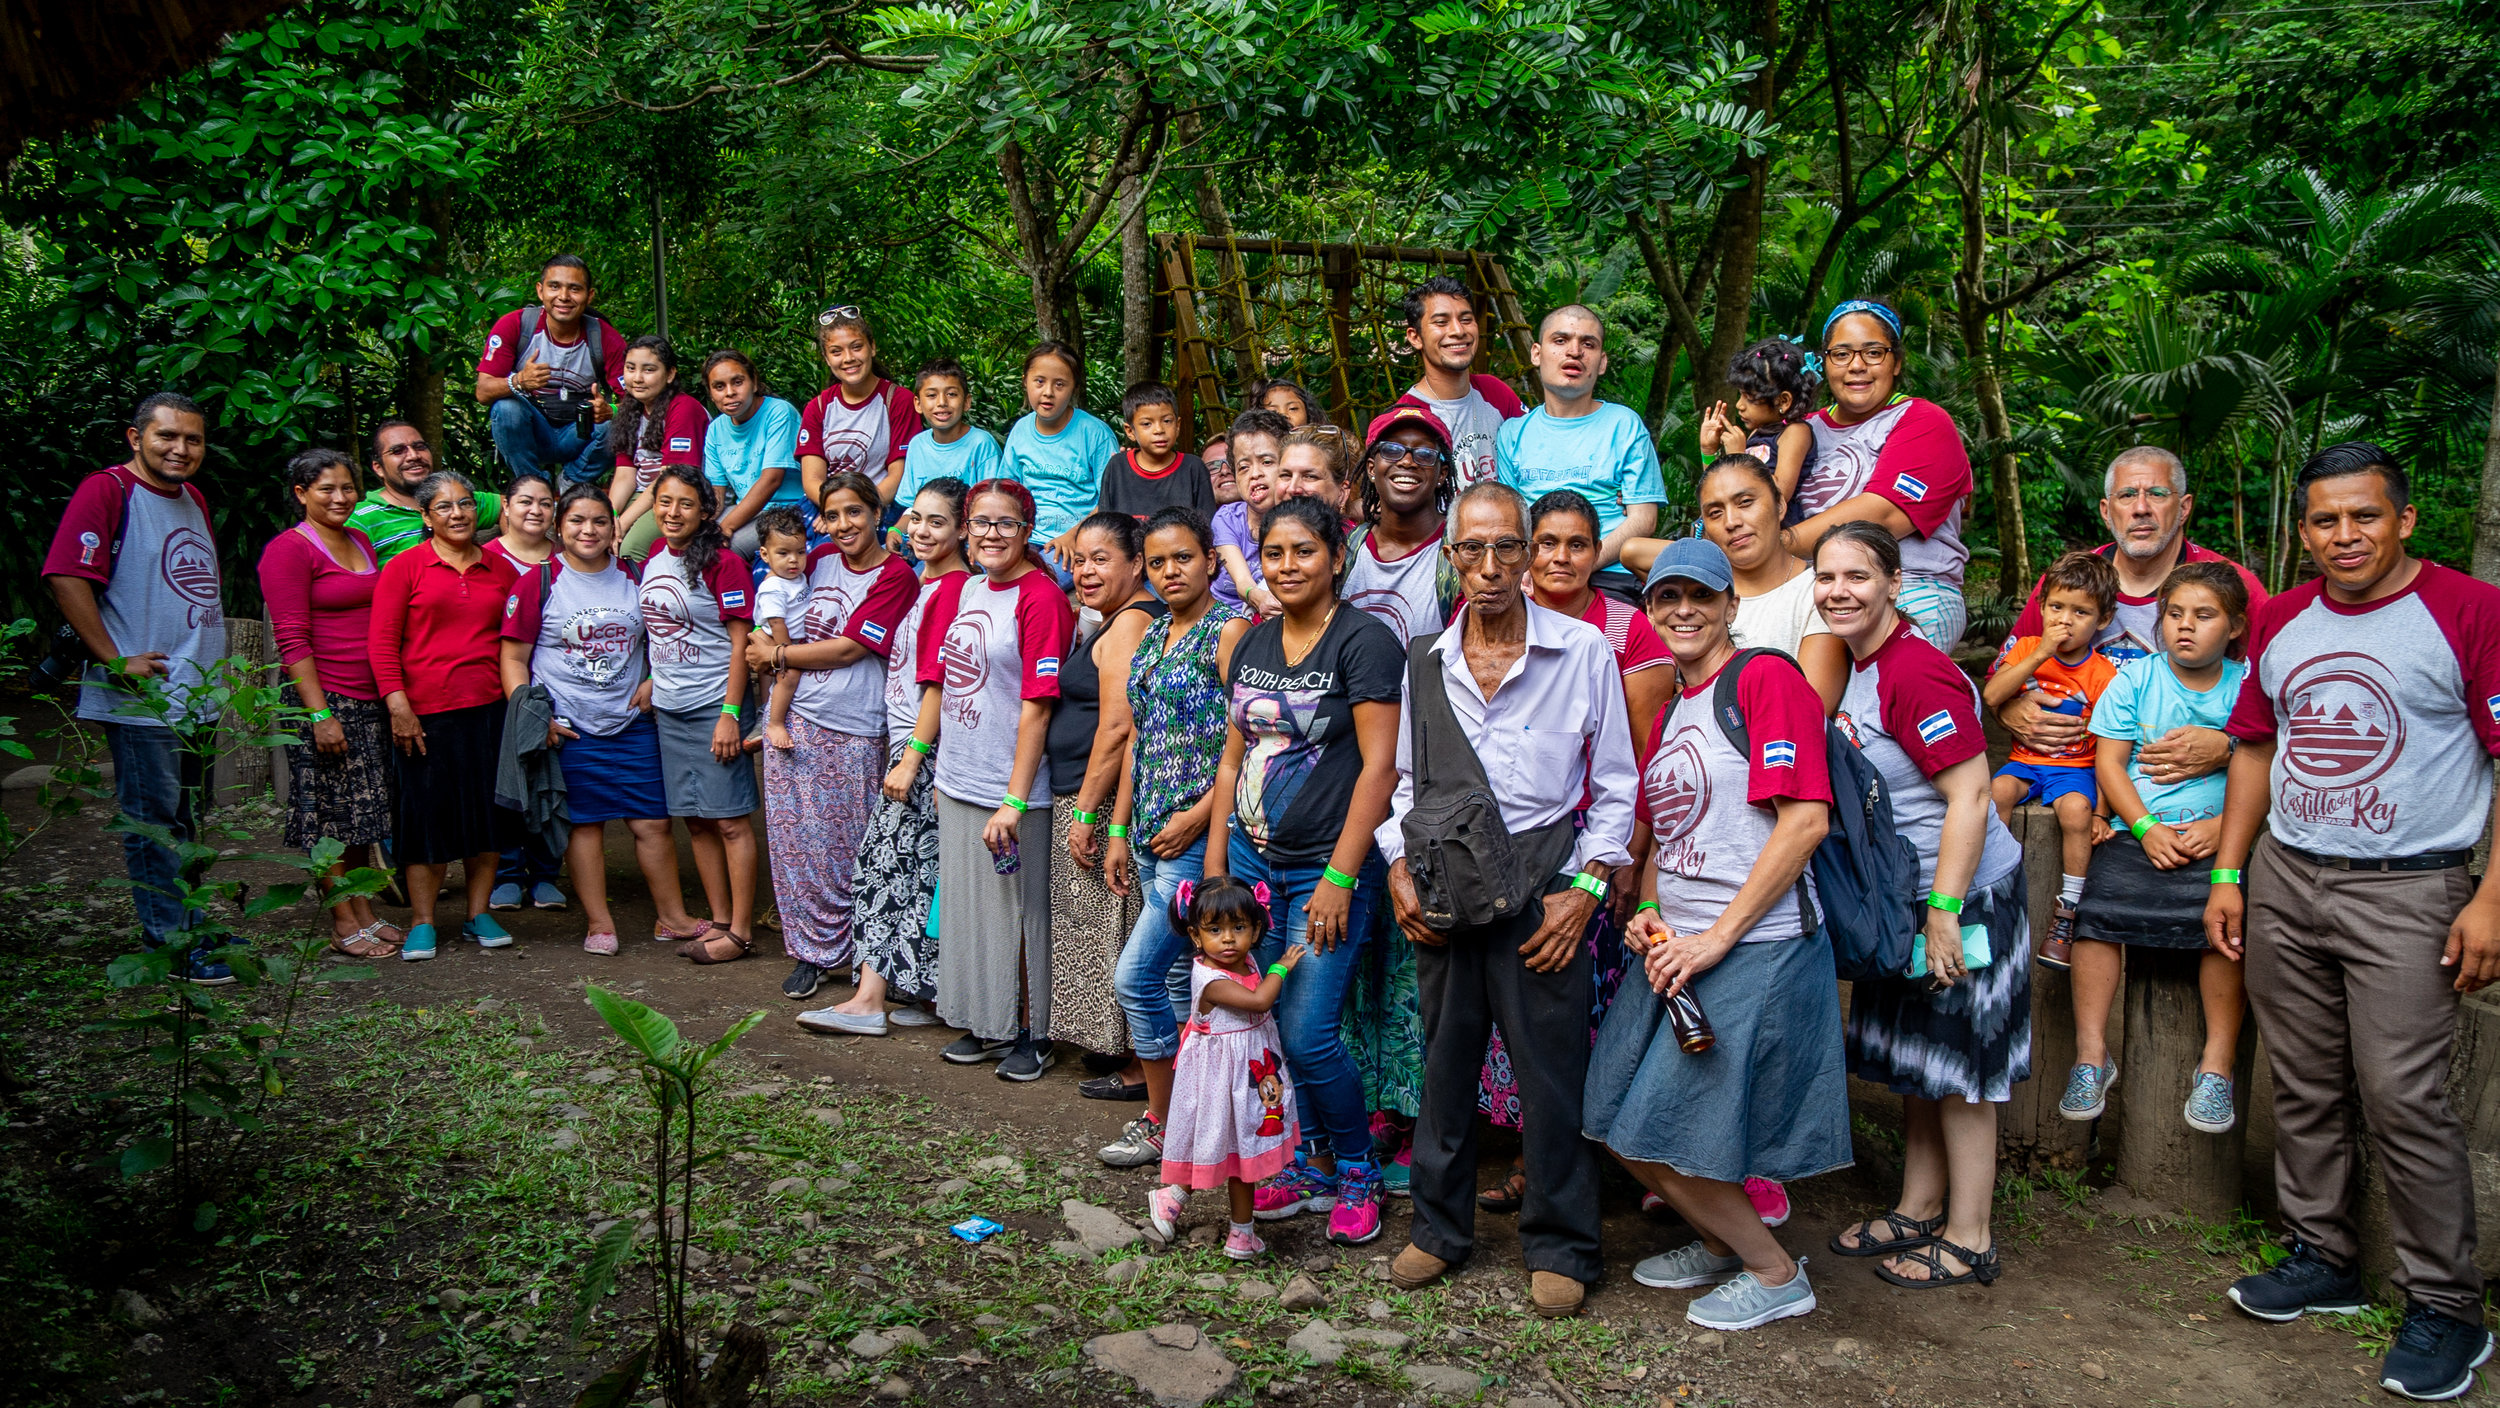 The special needs children that we were able to work with this year in El Salvador, We took them on a field trip to the nature reserve and spent the day, loving, laughing and eating together. We can not wait to go back again next year to love on them some more.